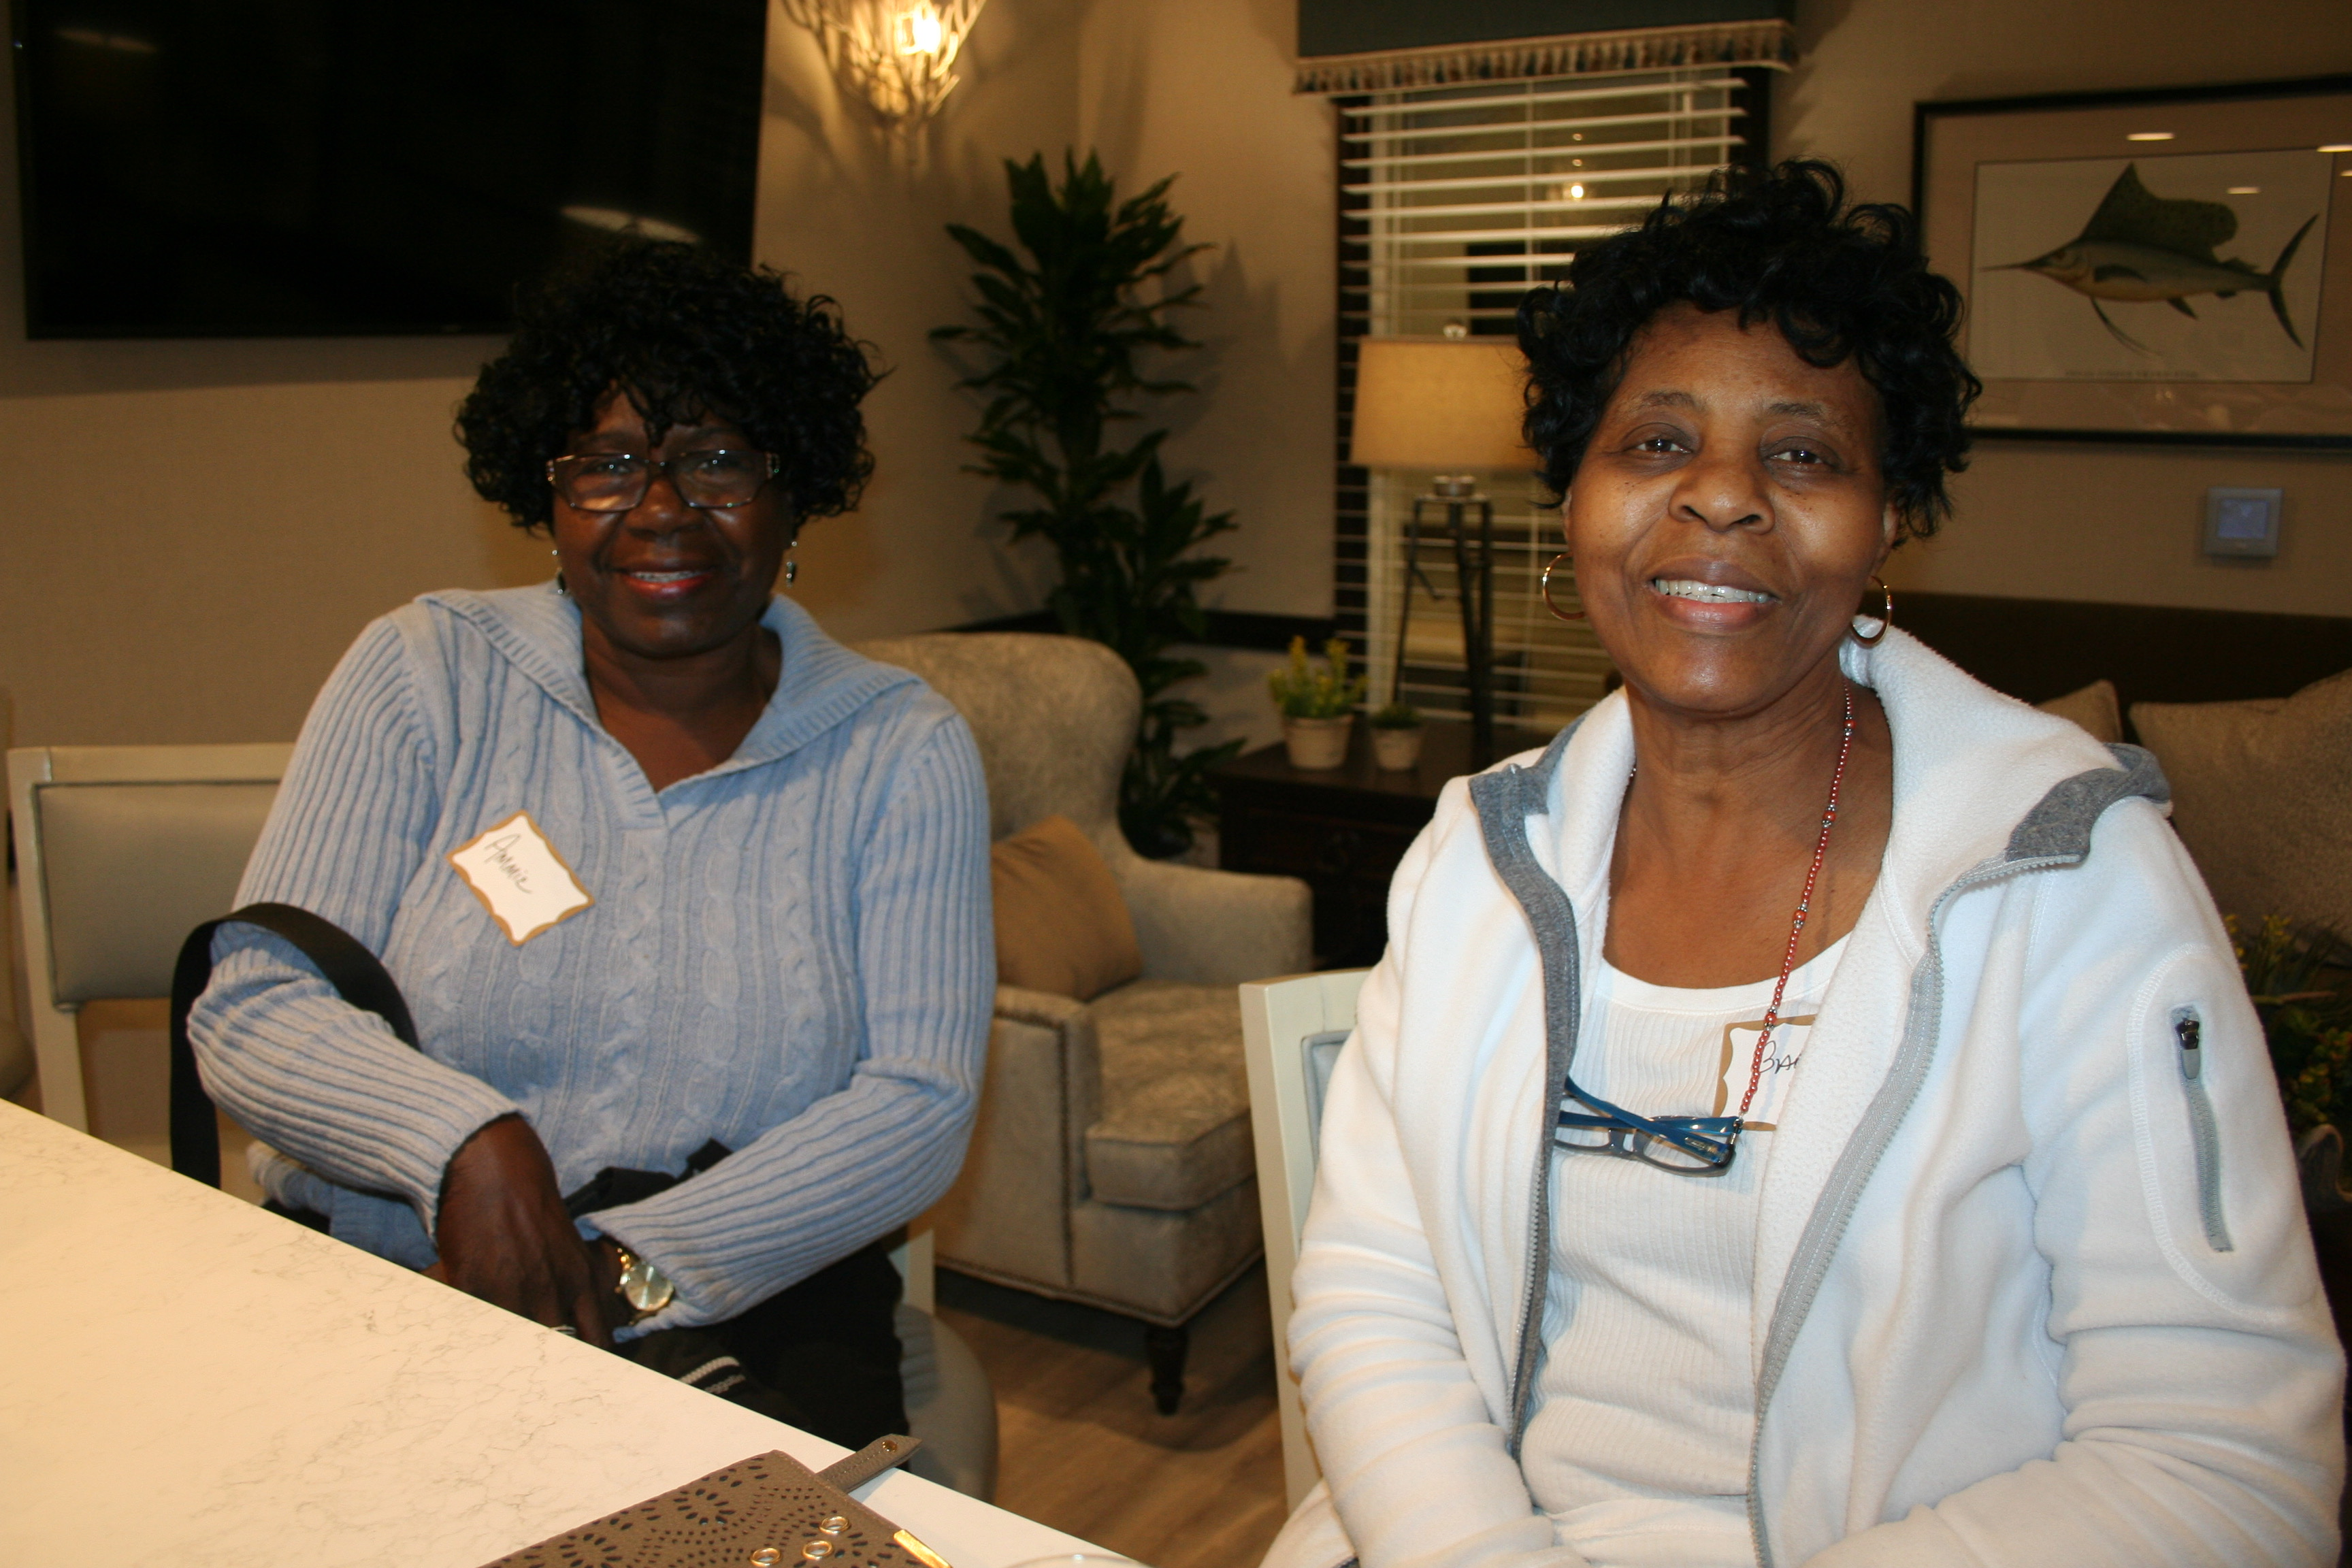 Ammie Lancaster of Charleston and Barbara Parrott of Mount Pleasant enjoyed refreshments in the center's dining room.